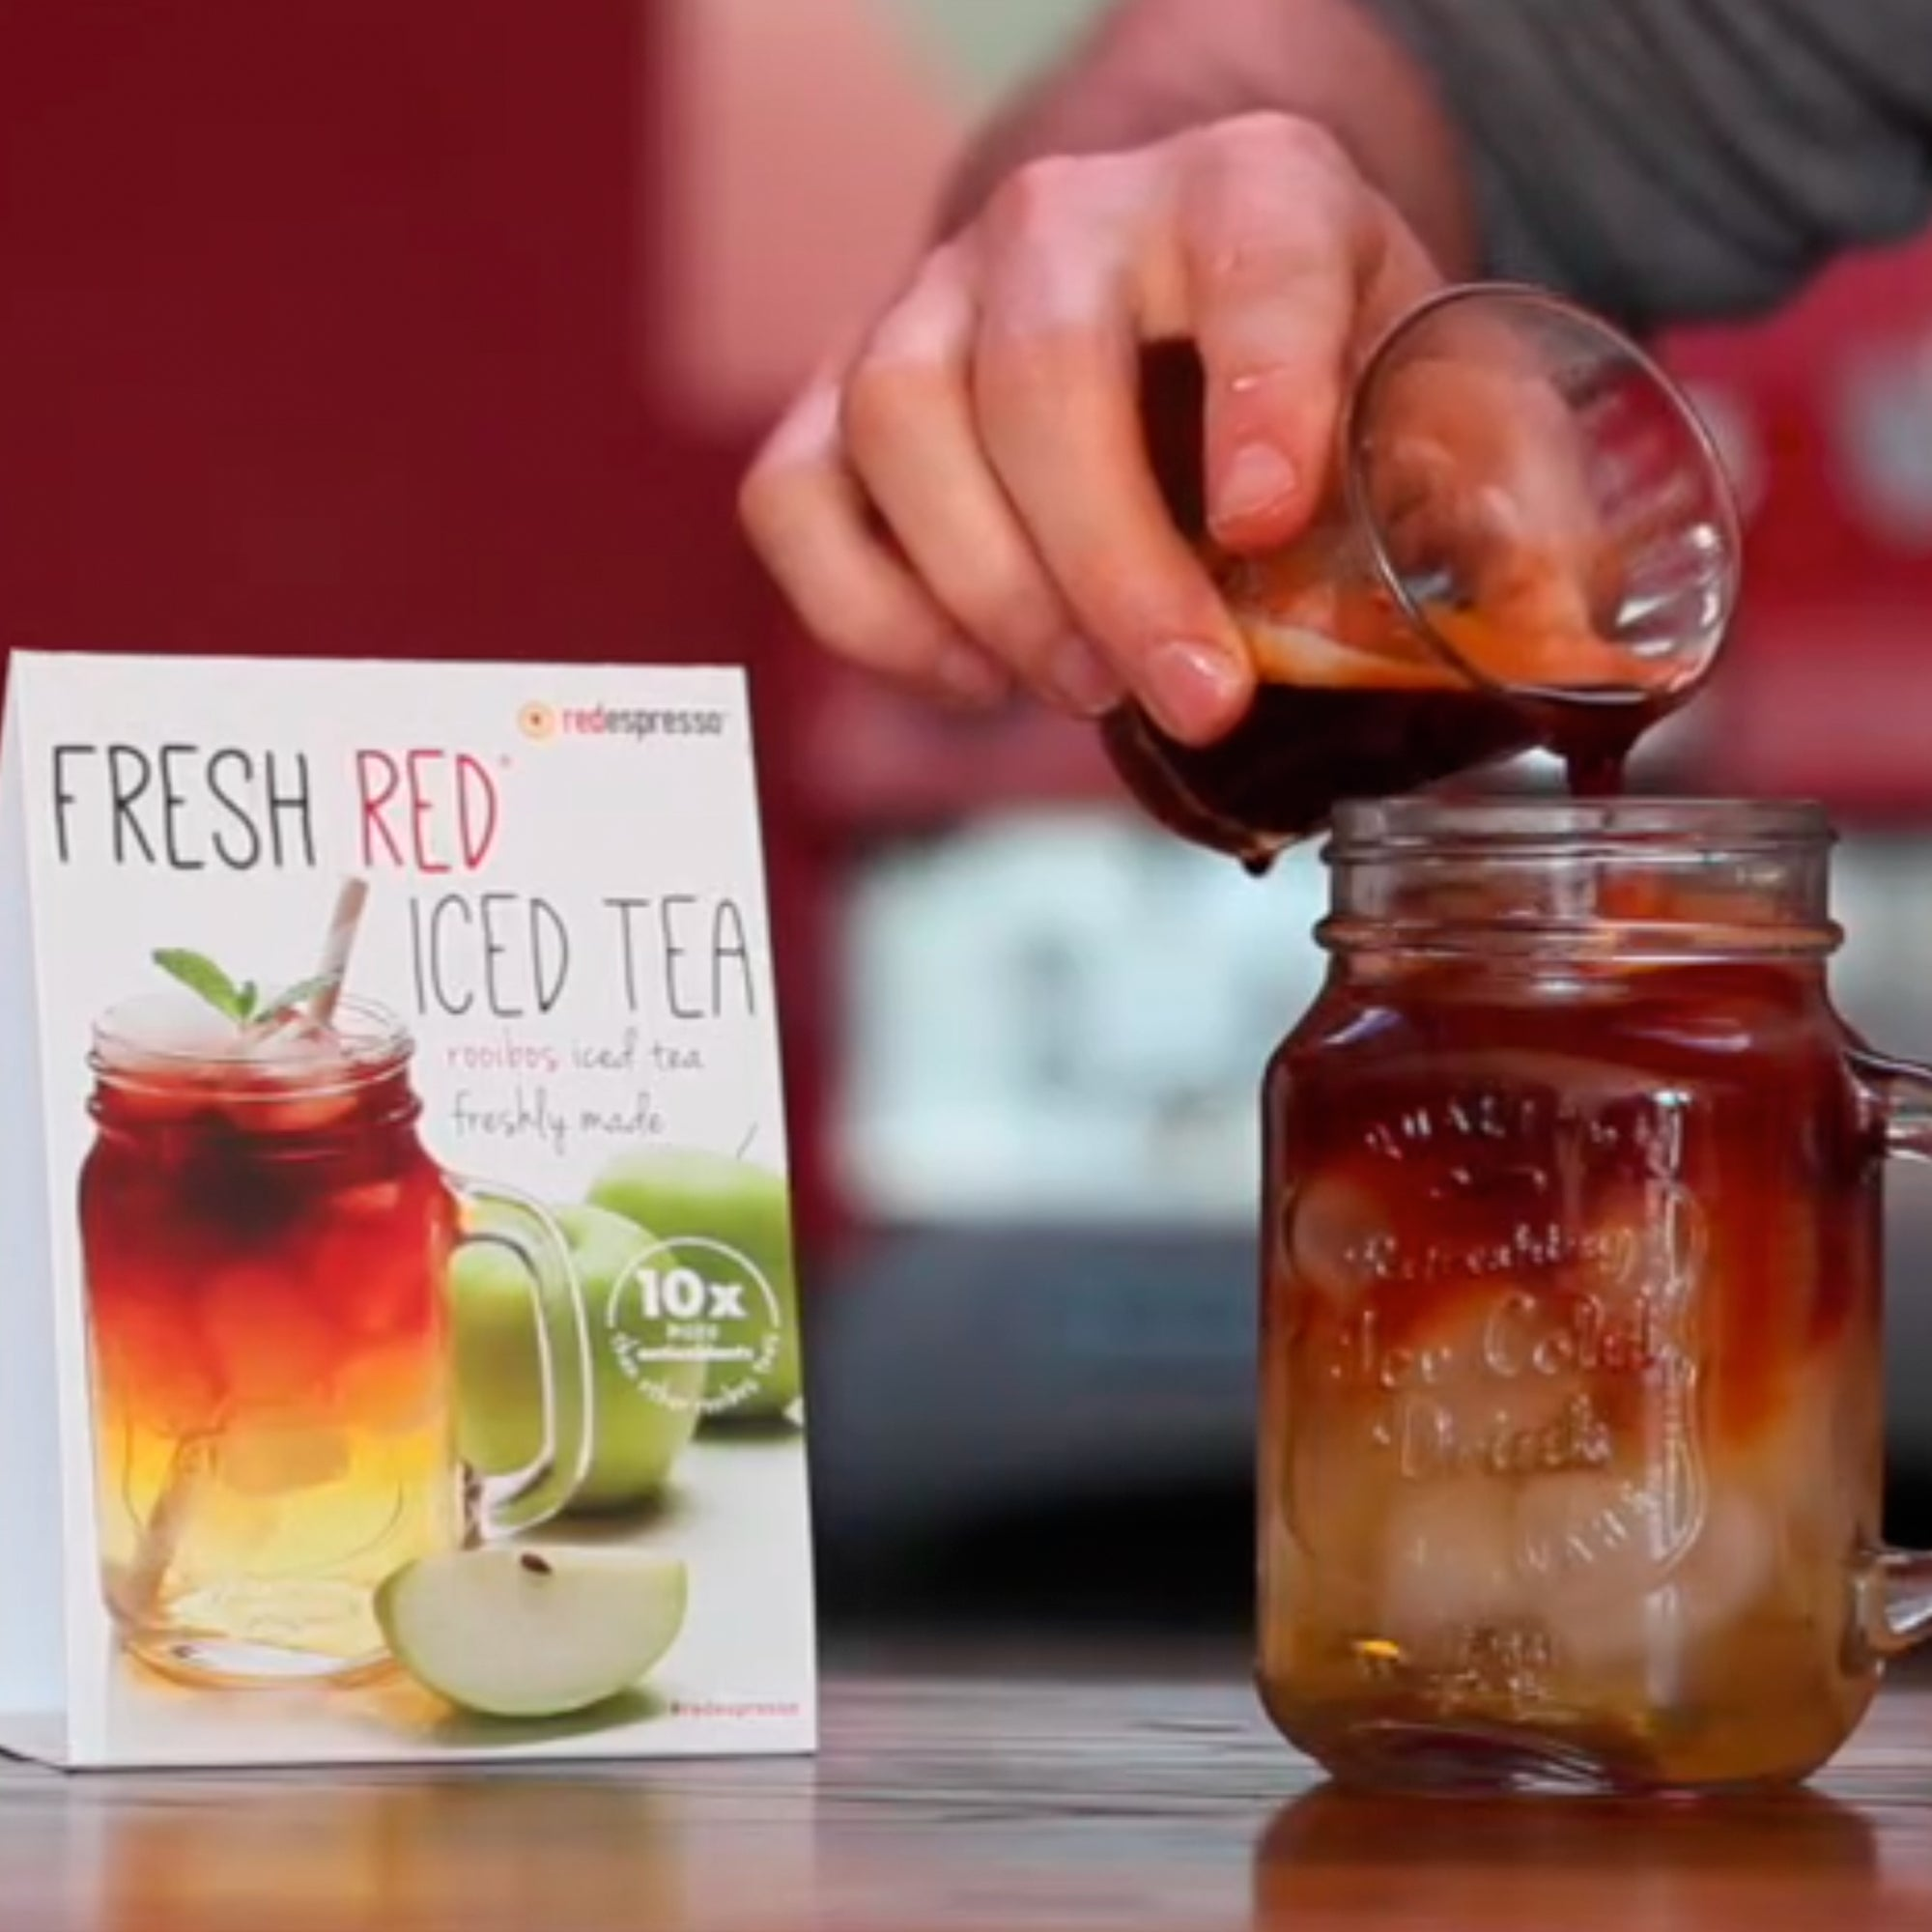 Serve our freshly made iced tea